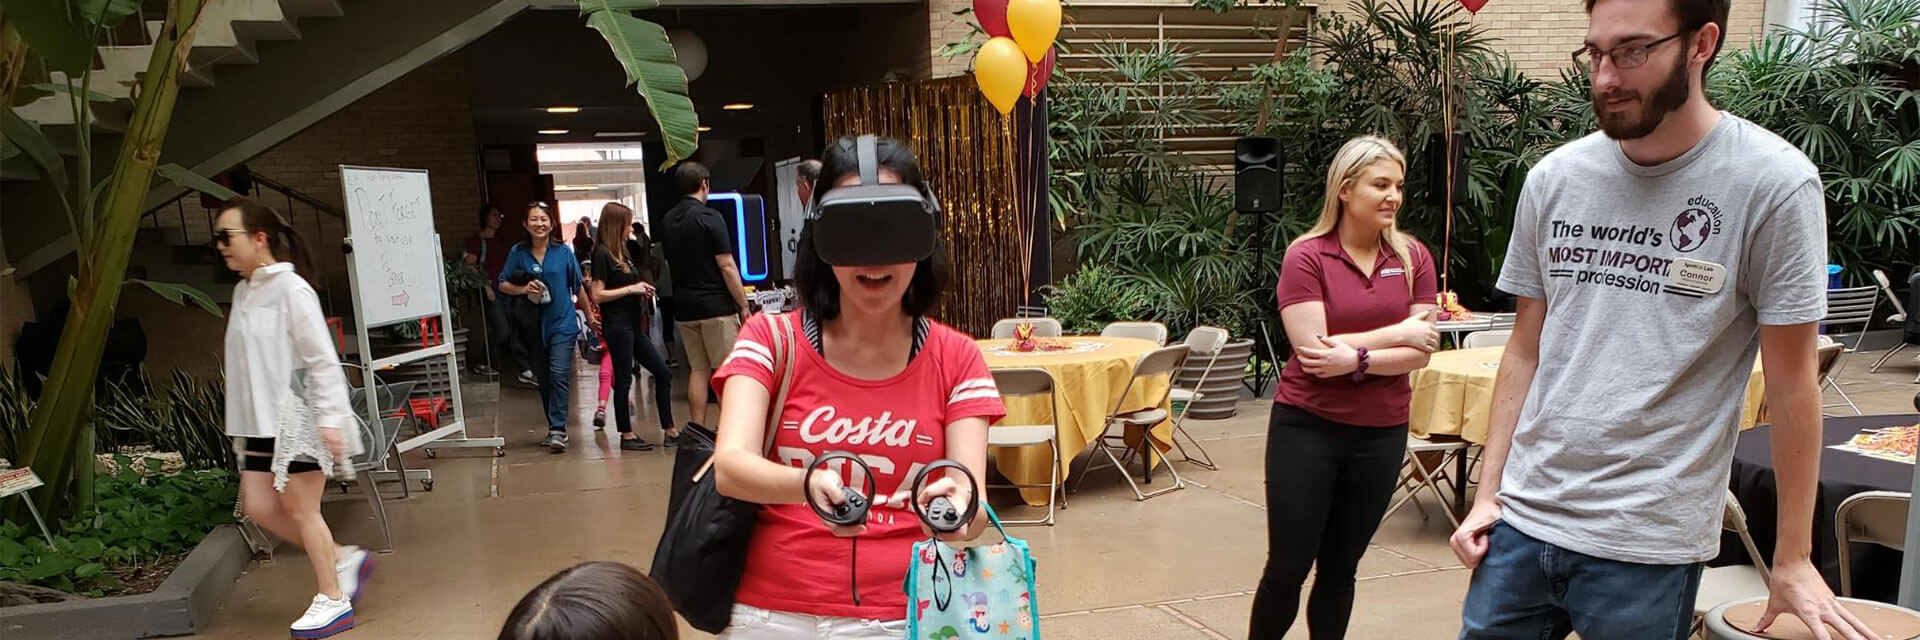 A woman having fun with VR goggles on